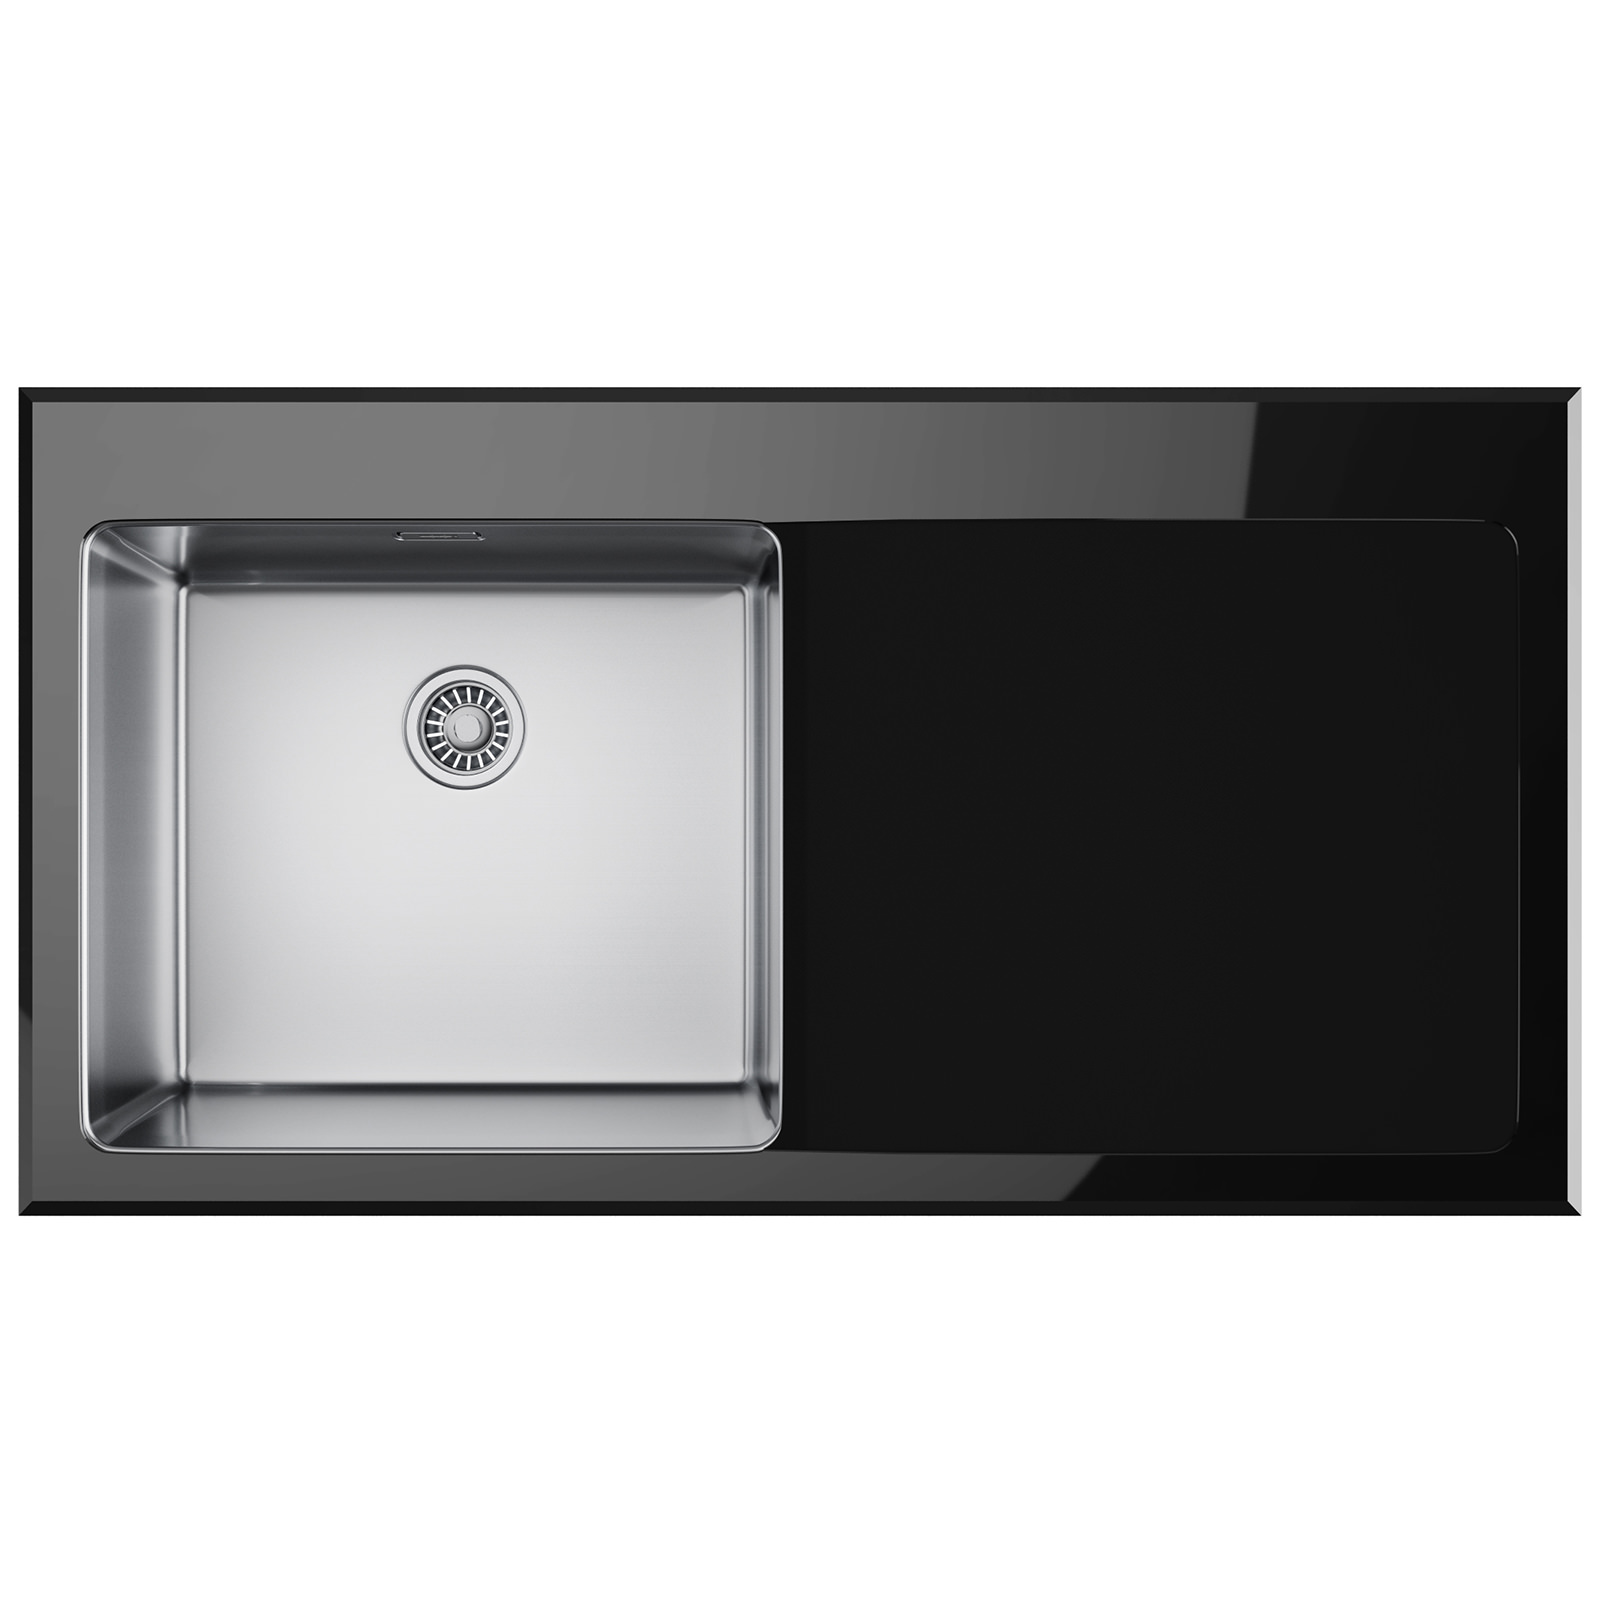 Franke Black Glass Sink : Franke Kubus KBV 611 Right Hand Drainer Black Glass Inset Sink